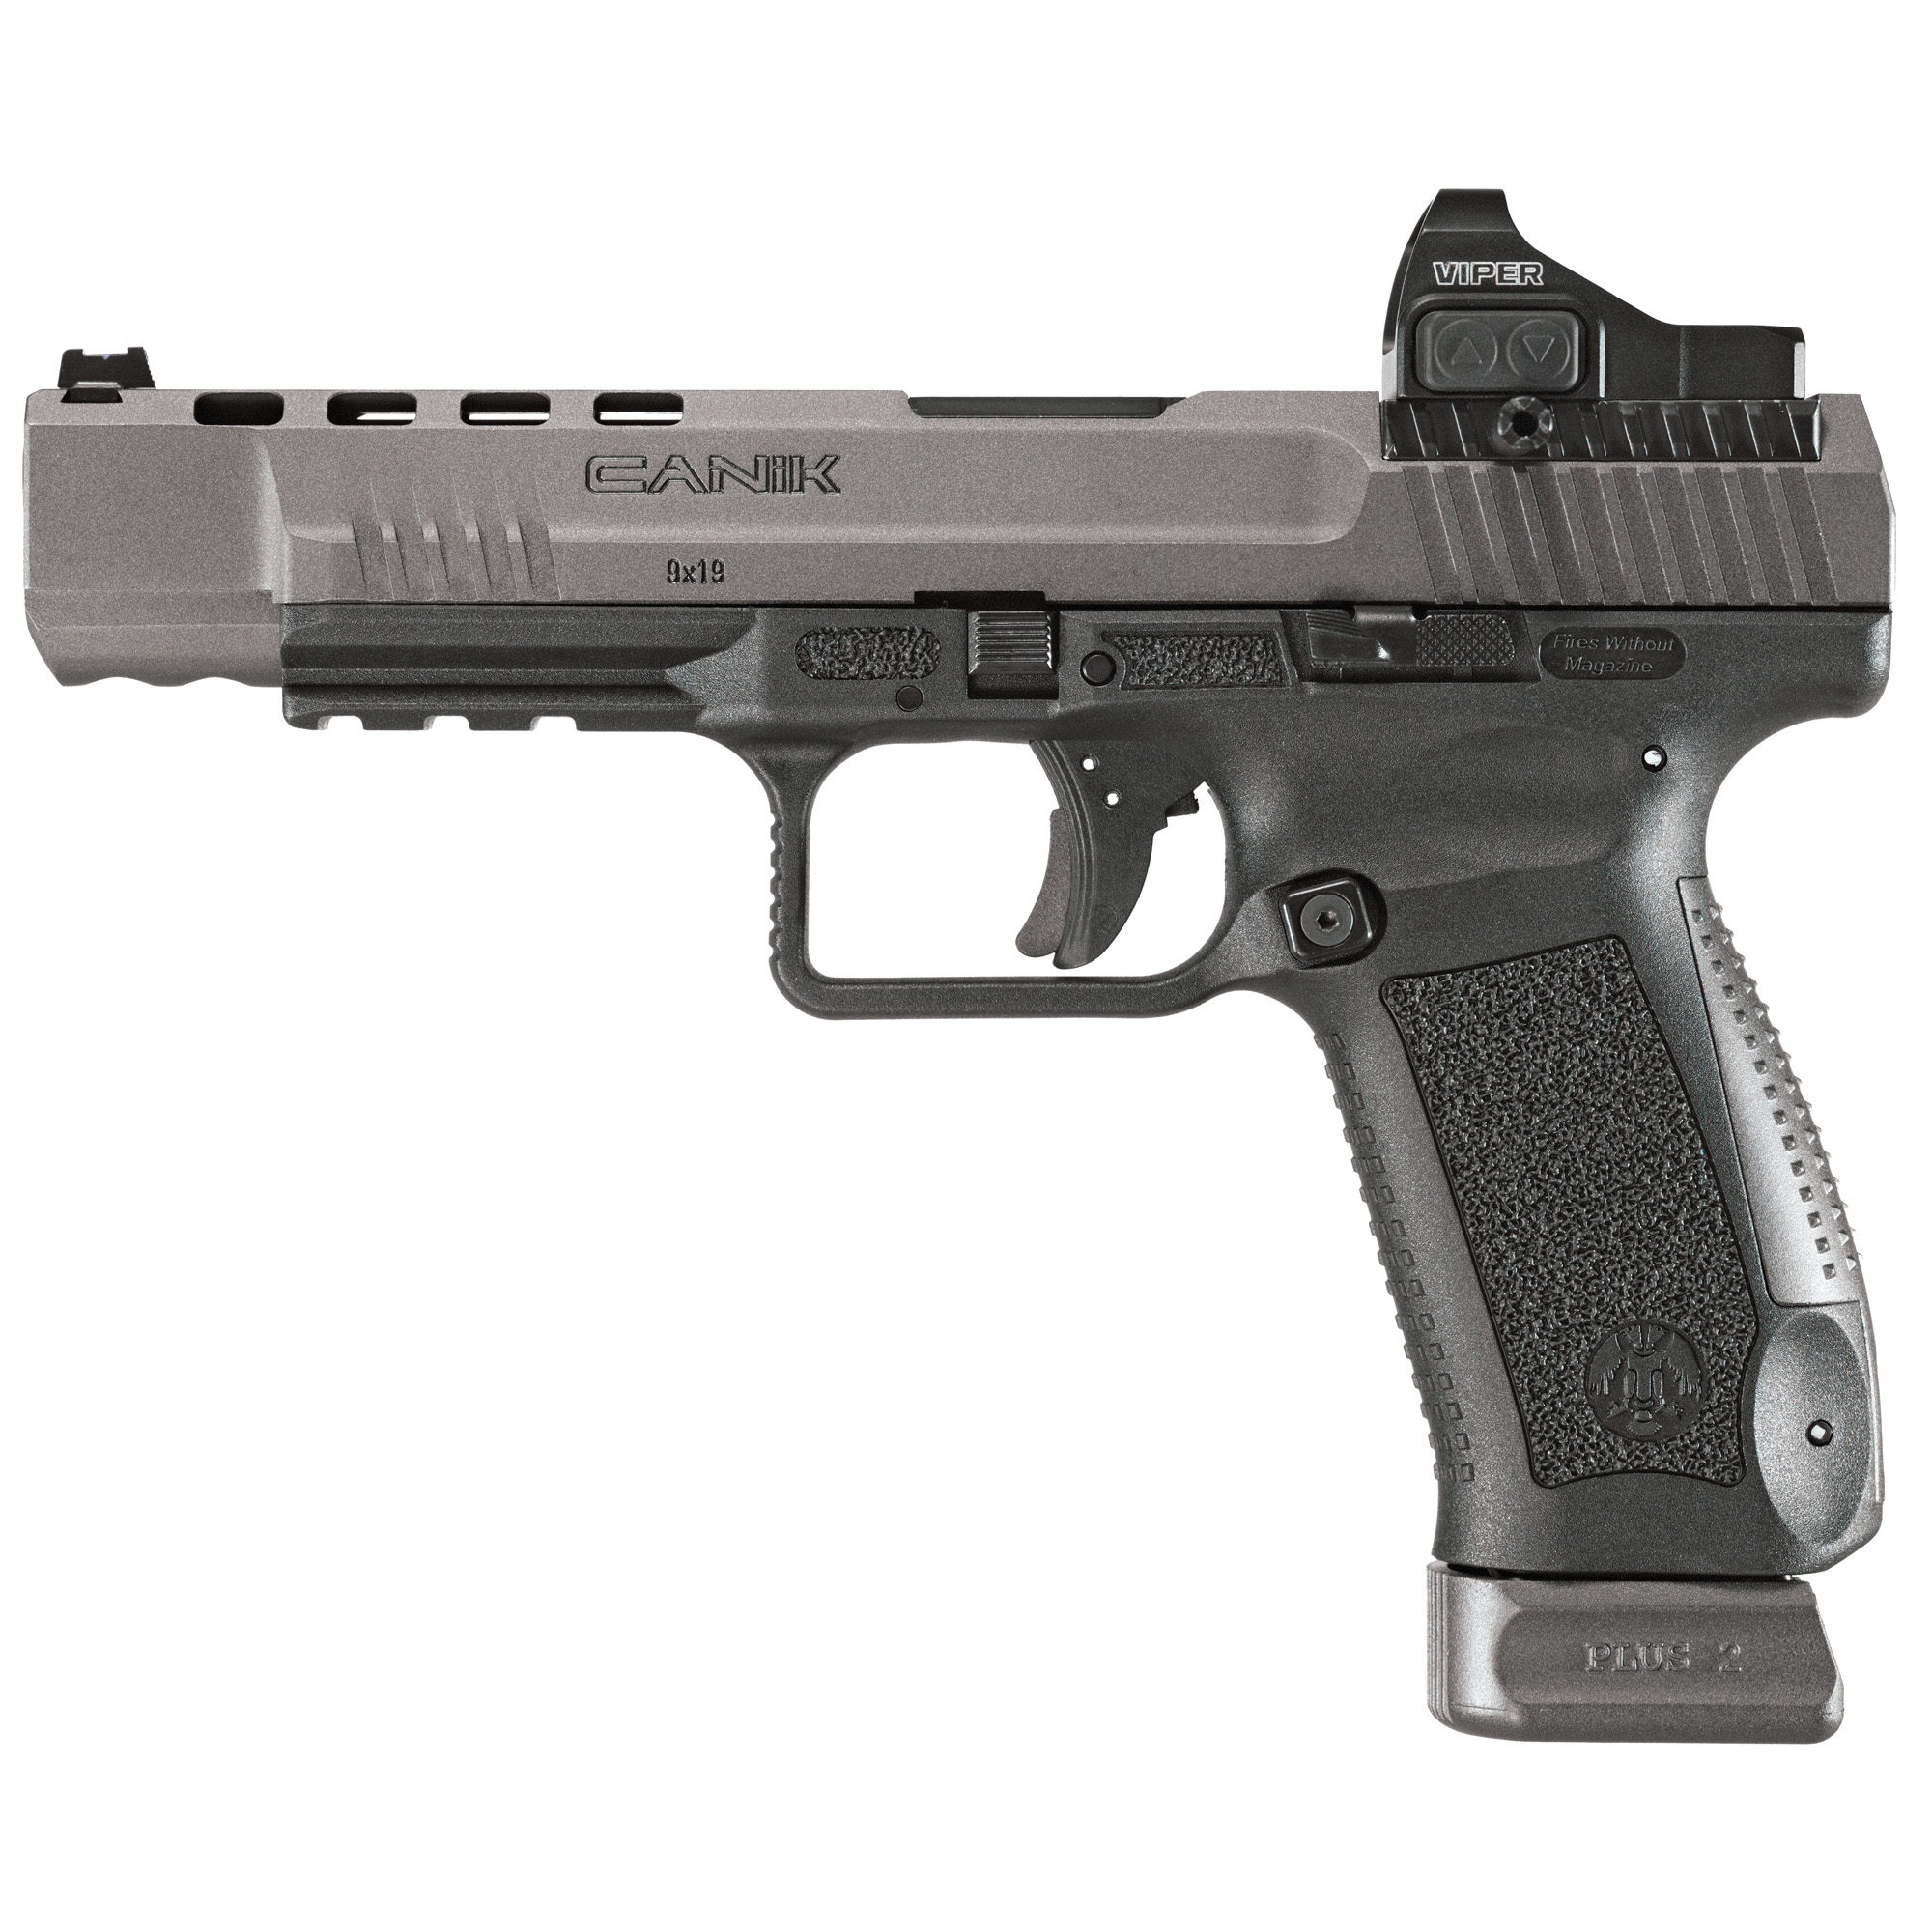 """The TP9SFx comes with Warren Tactical sights with red and green fiber optic front sight and four red dot interface plates to mount optics. Other features include: Extended ergonomic slide release"""" reversible ambidextrous cocking lever"""" forward slide serrations and improved single action trigger."""